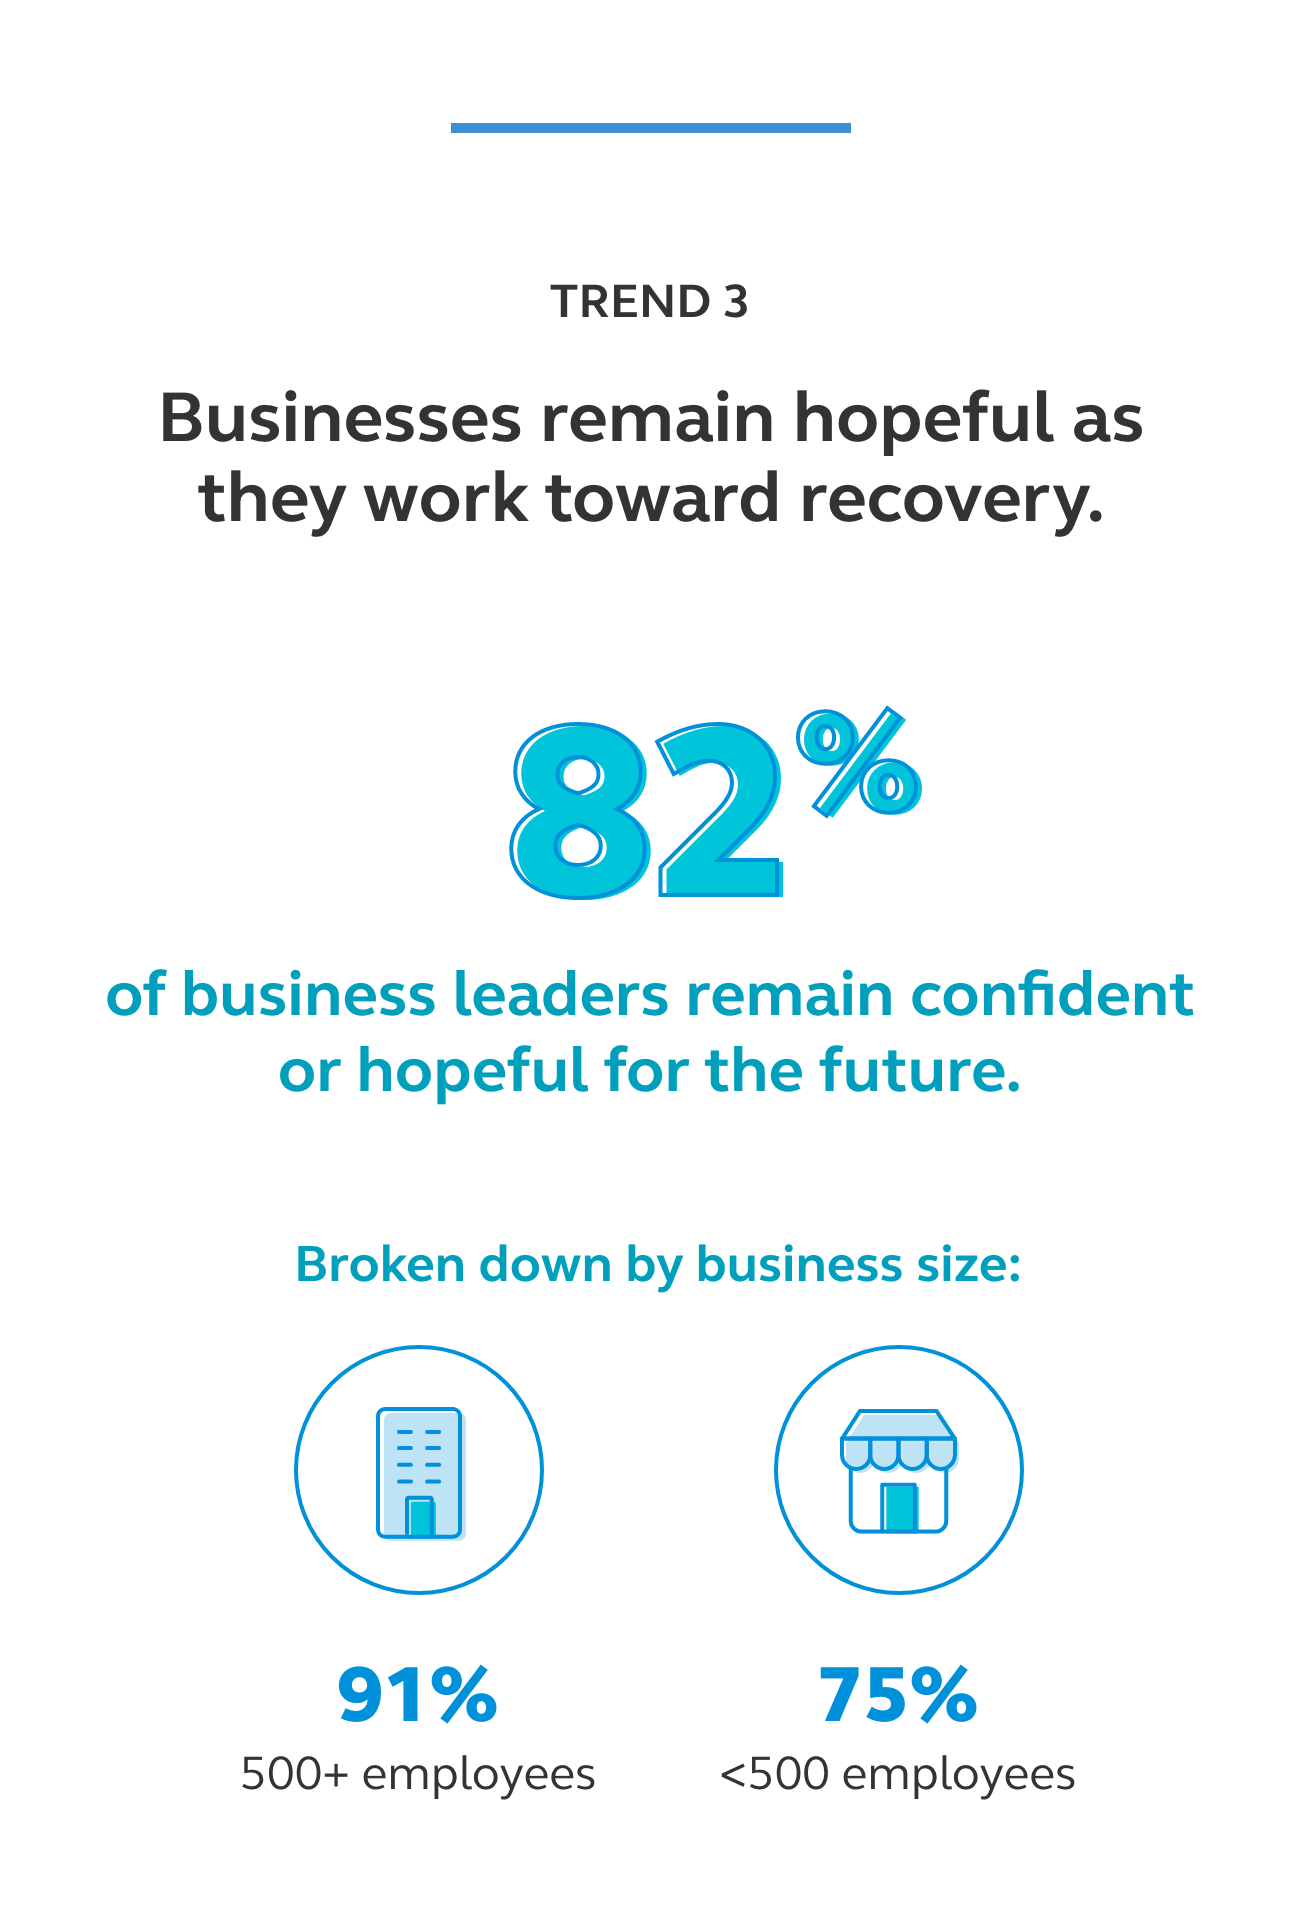 Graphic showing that 82% of business leaders remain confident or hopeful for the future.